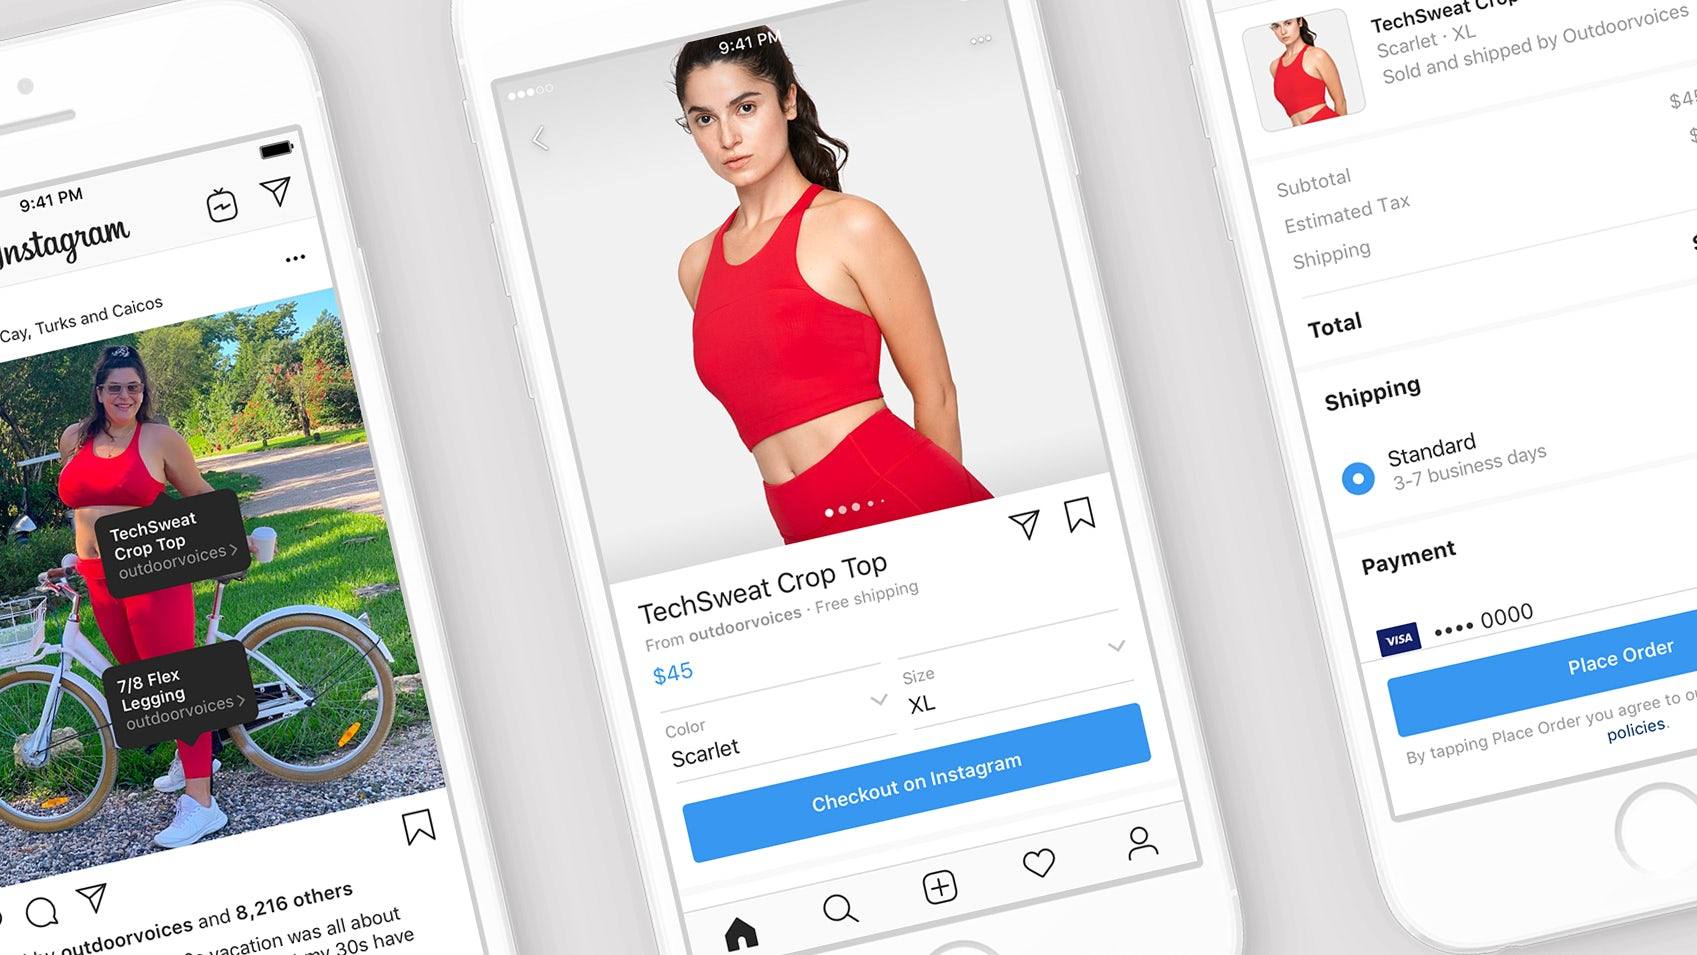 Instagram's Checkout feature allows users to shop directly in the app, through influencer accounts | Source: Courtesy